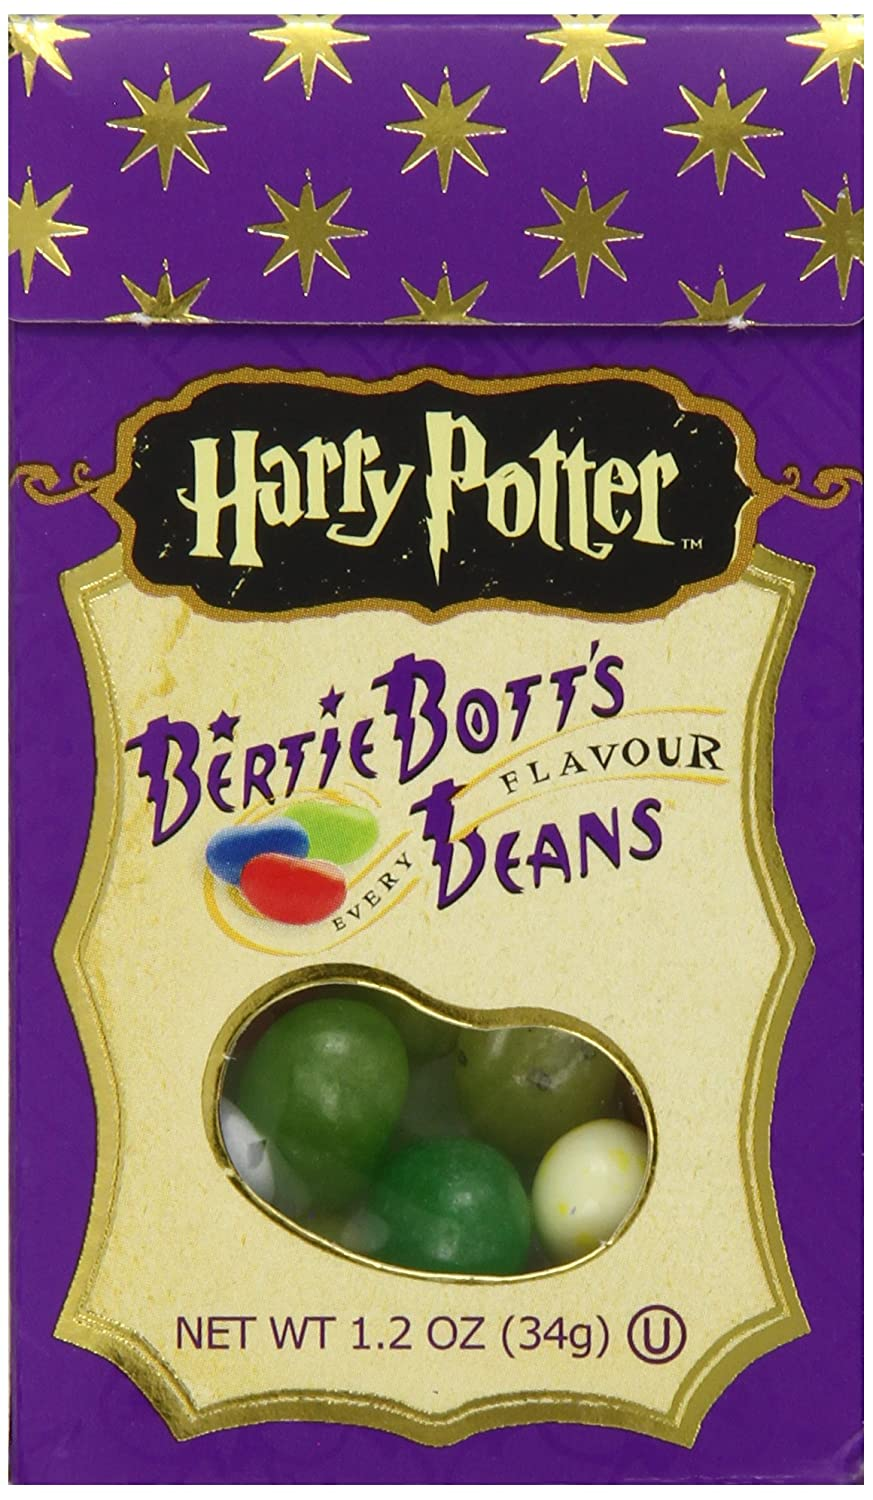 Harry Potter Bertie Bott's Flavour Beans (3 Packs)